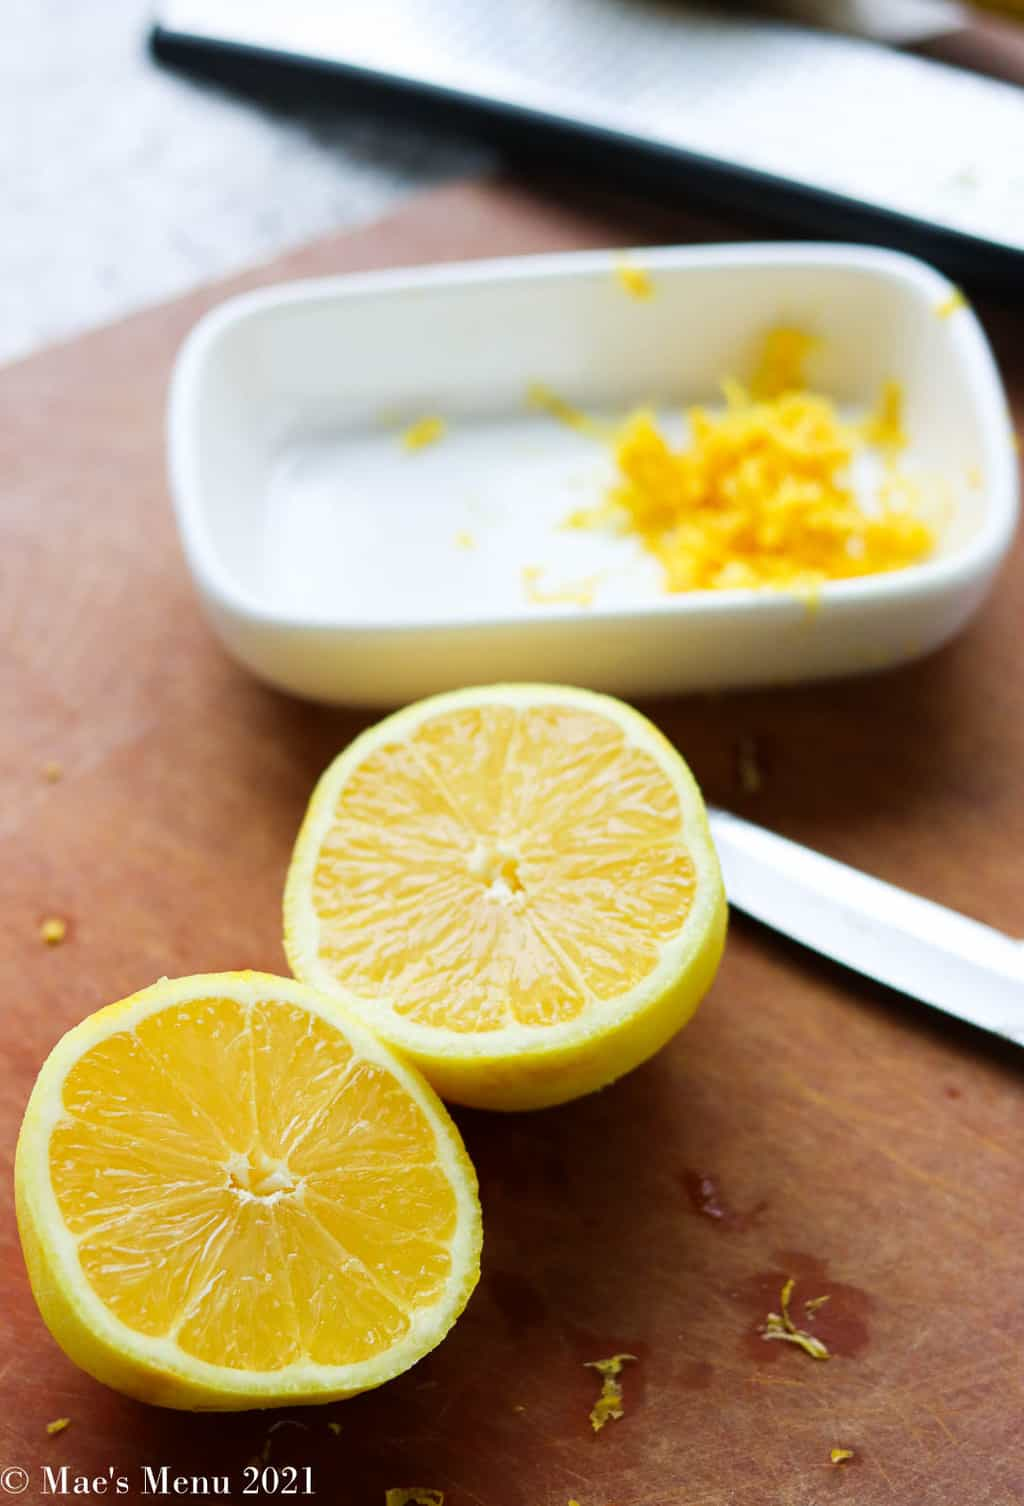 A lemon cut in half with a dish of lemon zest in the back